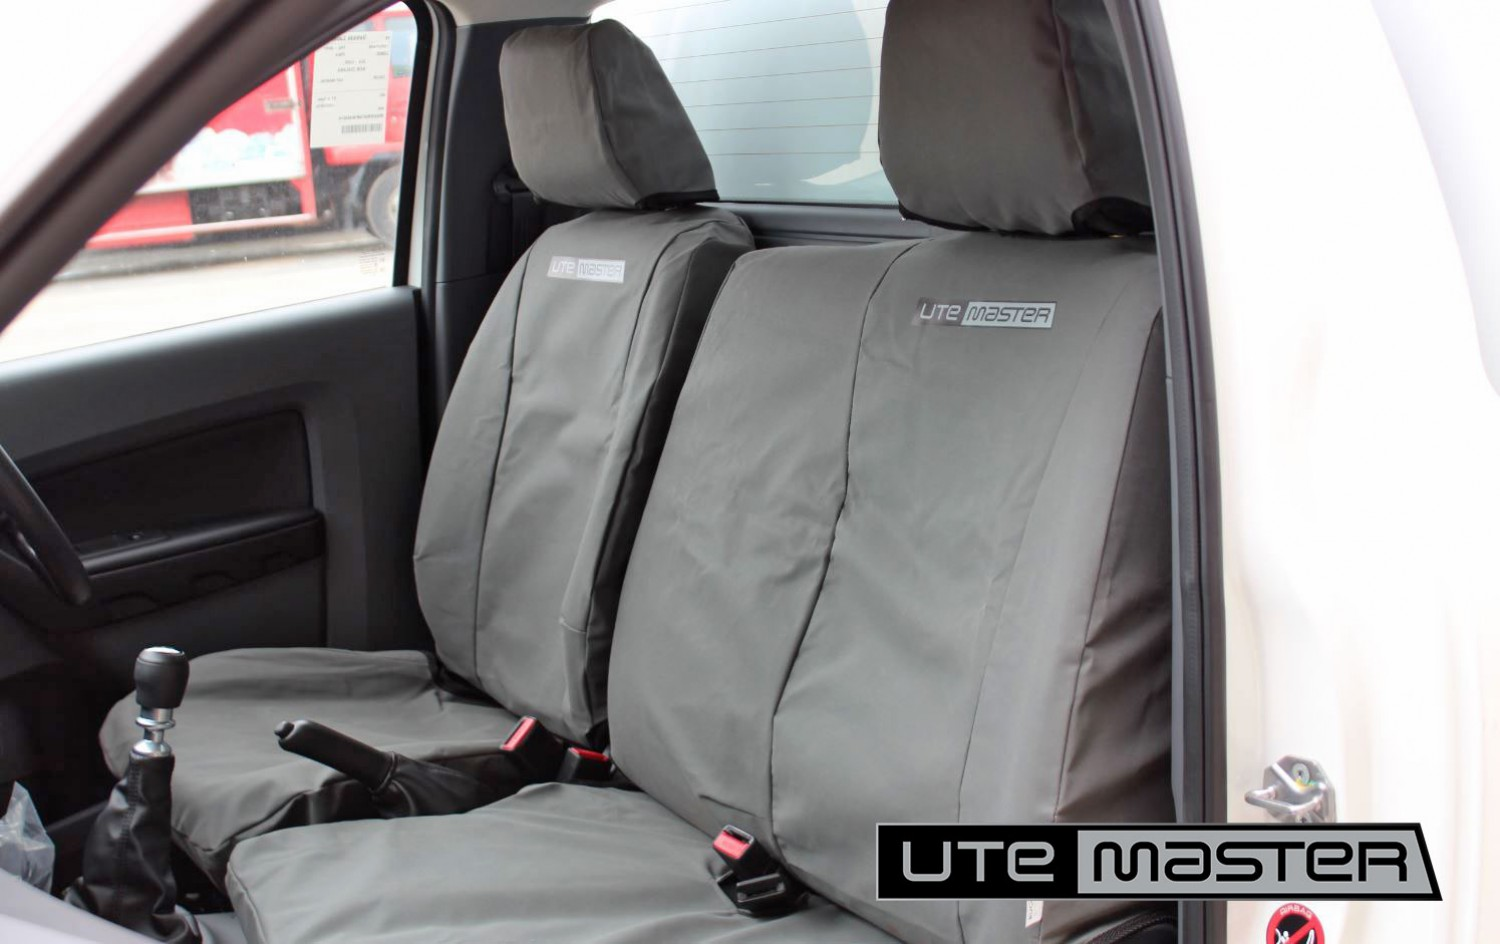 Commercial Grade Seat Covers for Utes  Vans Heavy Duty